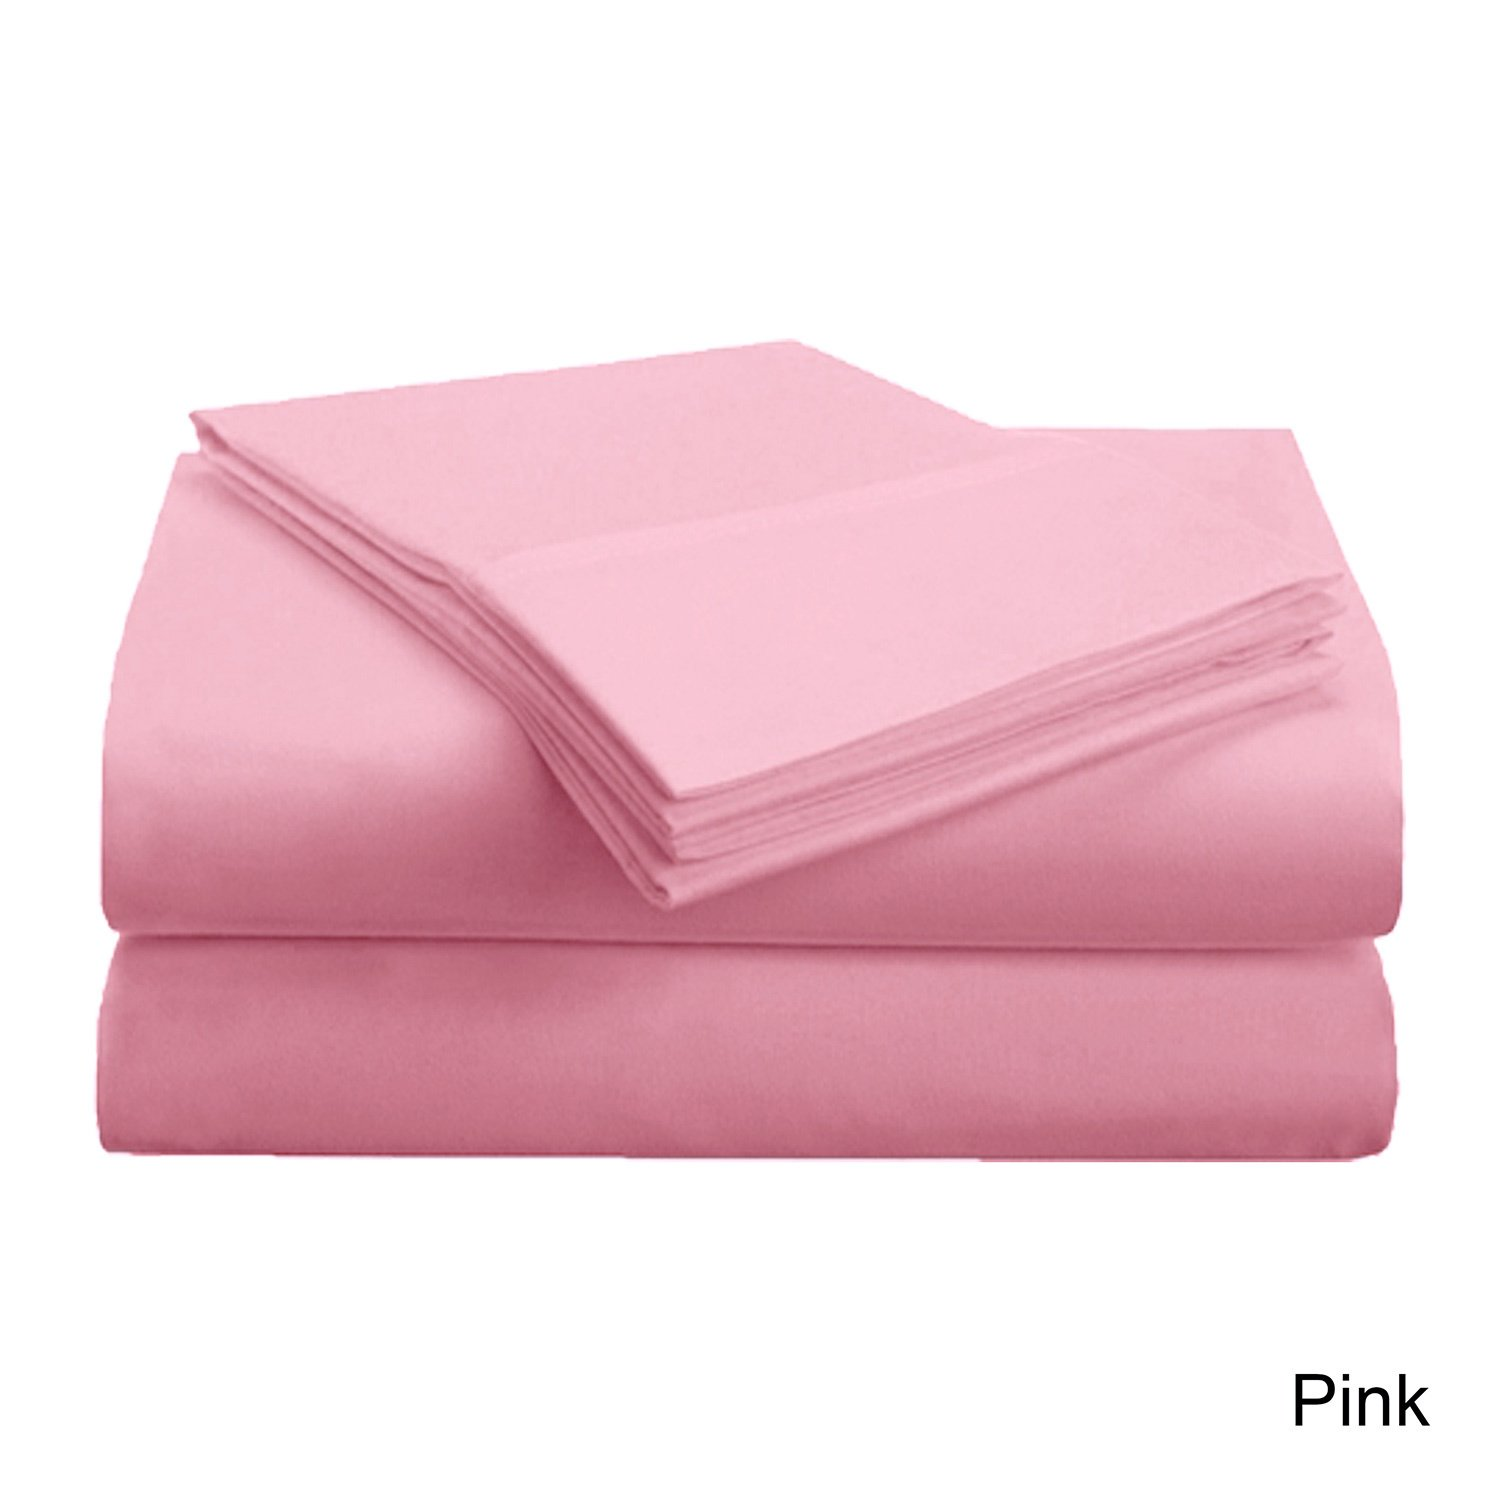 4 Piece King Pink Sheet Set, Casual & Traditional Style, Solid Color, Fully Elasticized Fitted Sheet, Solid Color, Microfiber, Sateen weave, Single-ply design, Machine Wash, Bed Sheet